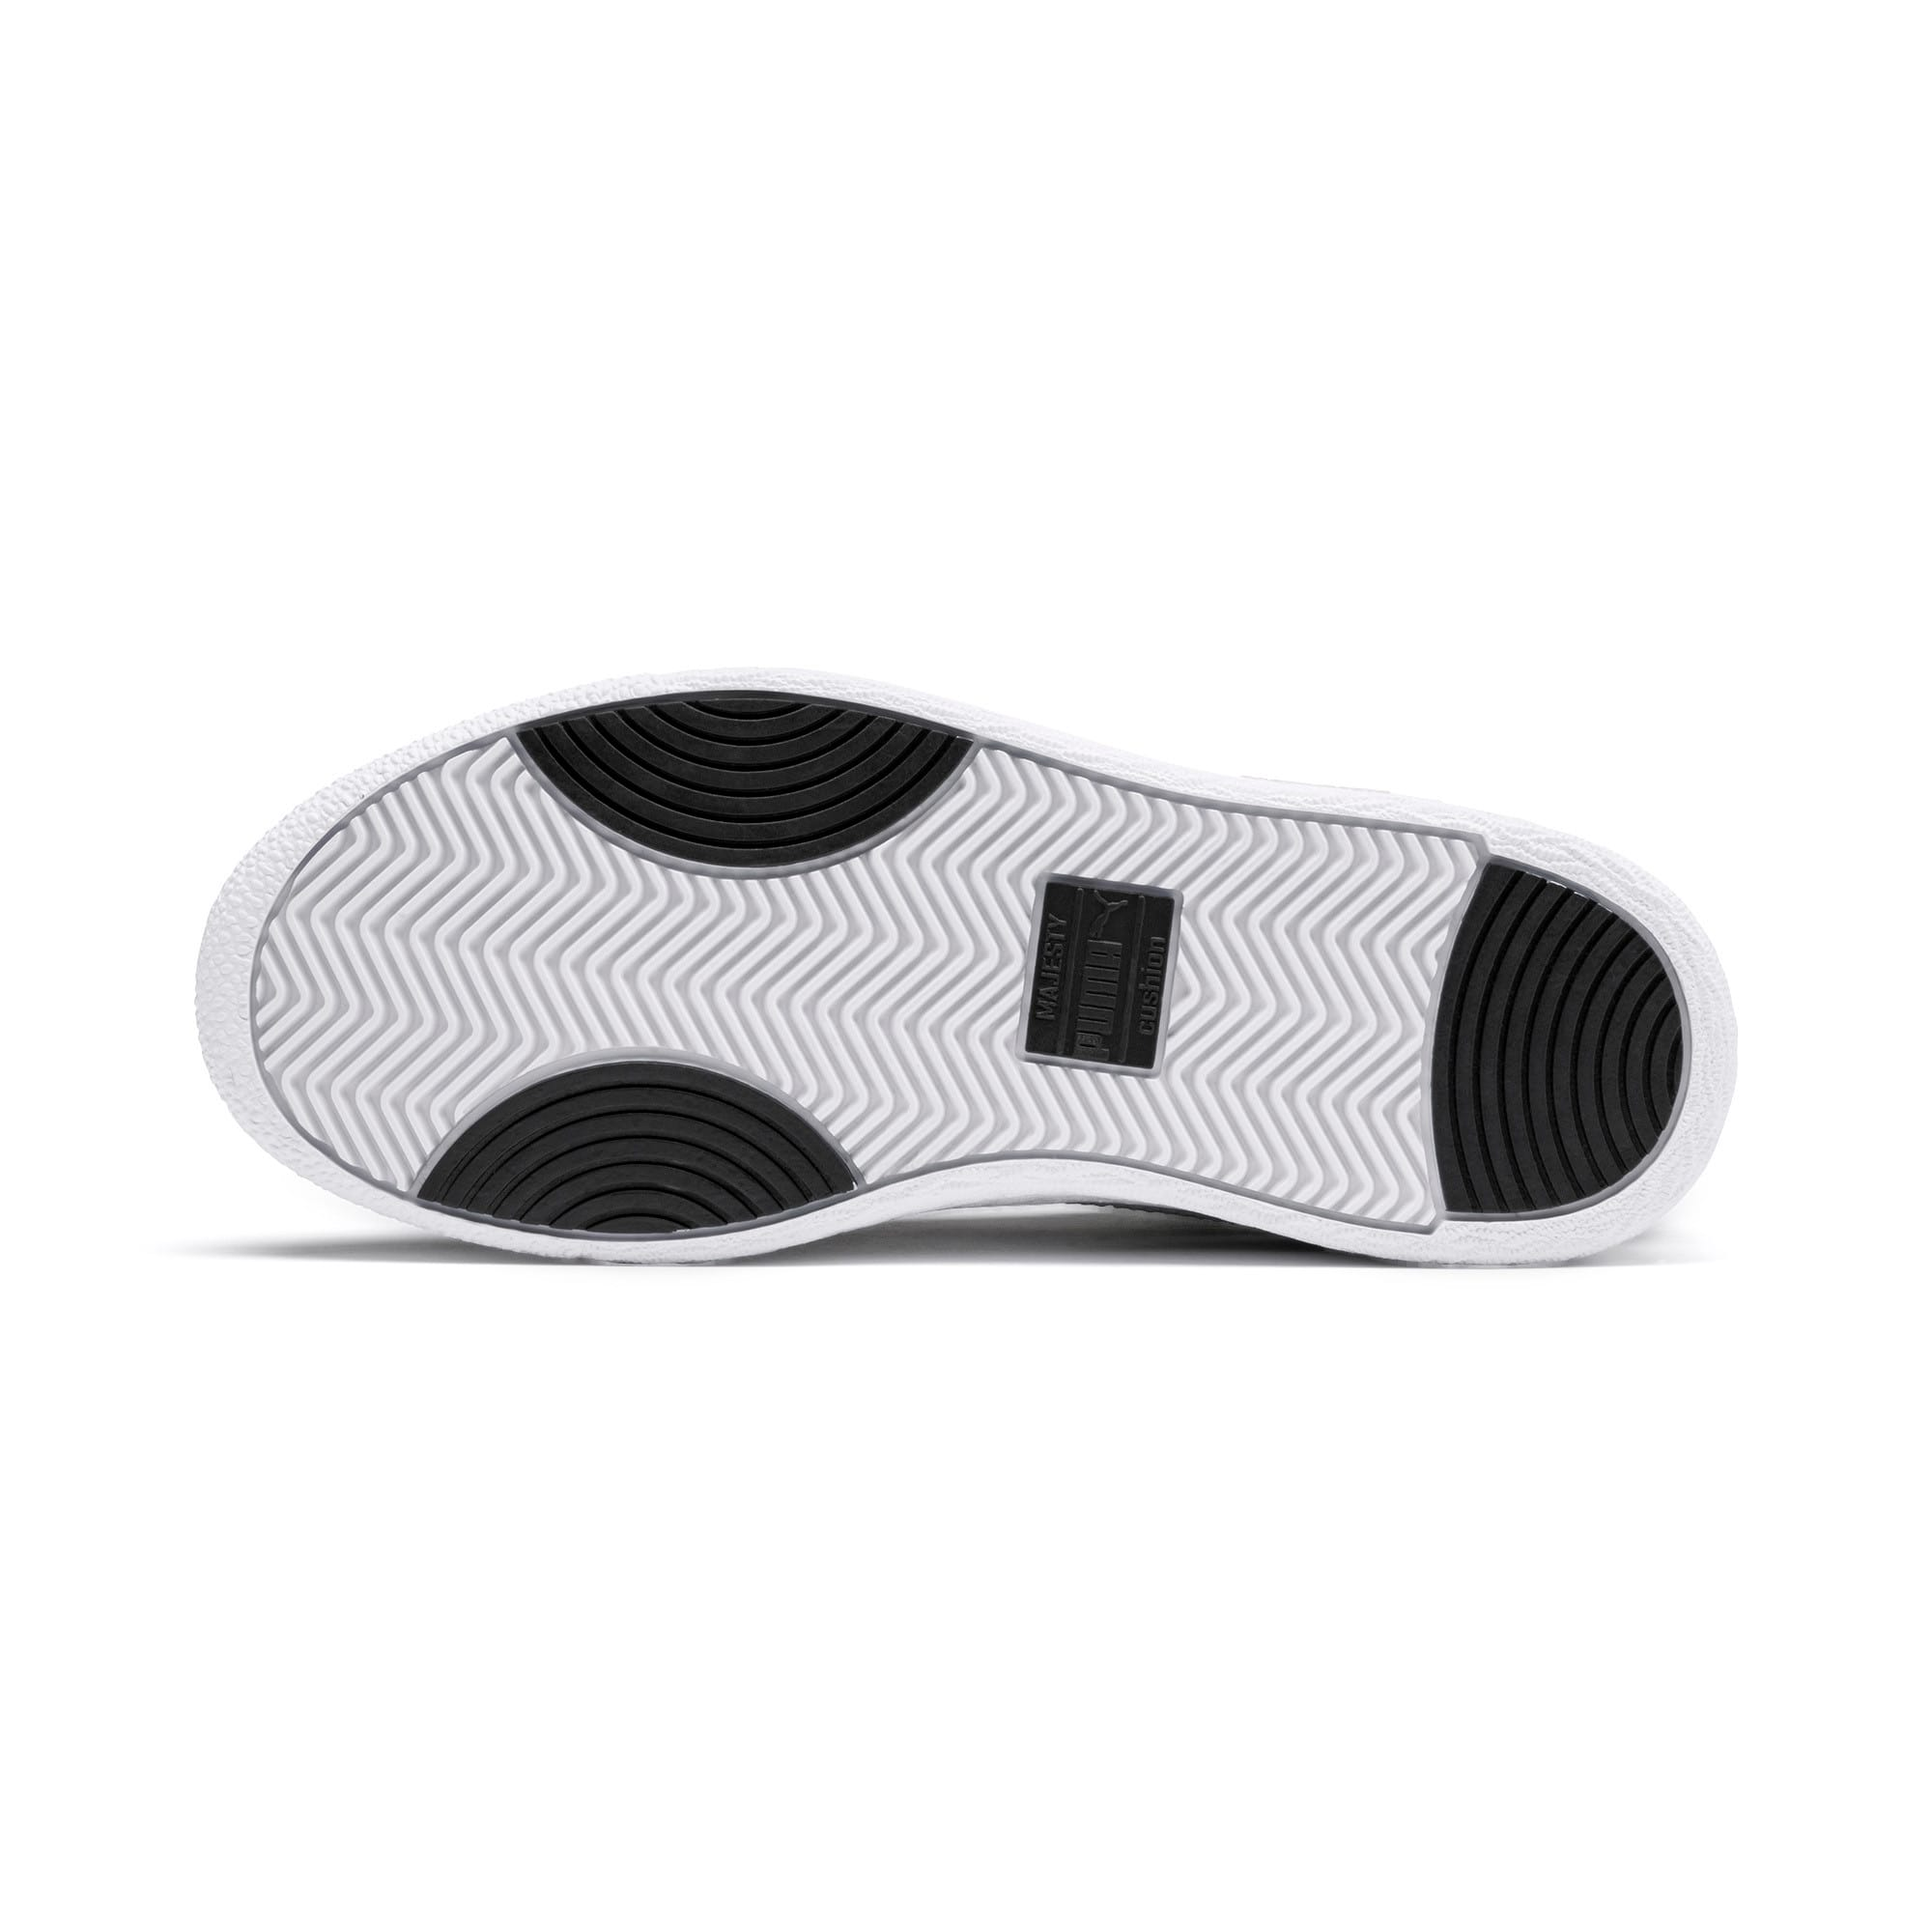 Thumbnail 4 of Ralph Sampson Lo Sneakers JR, Black-White-White, medium